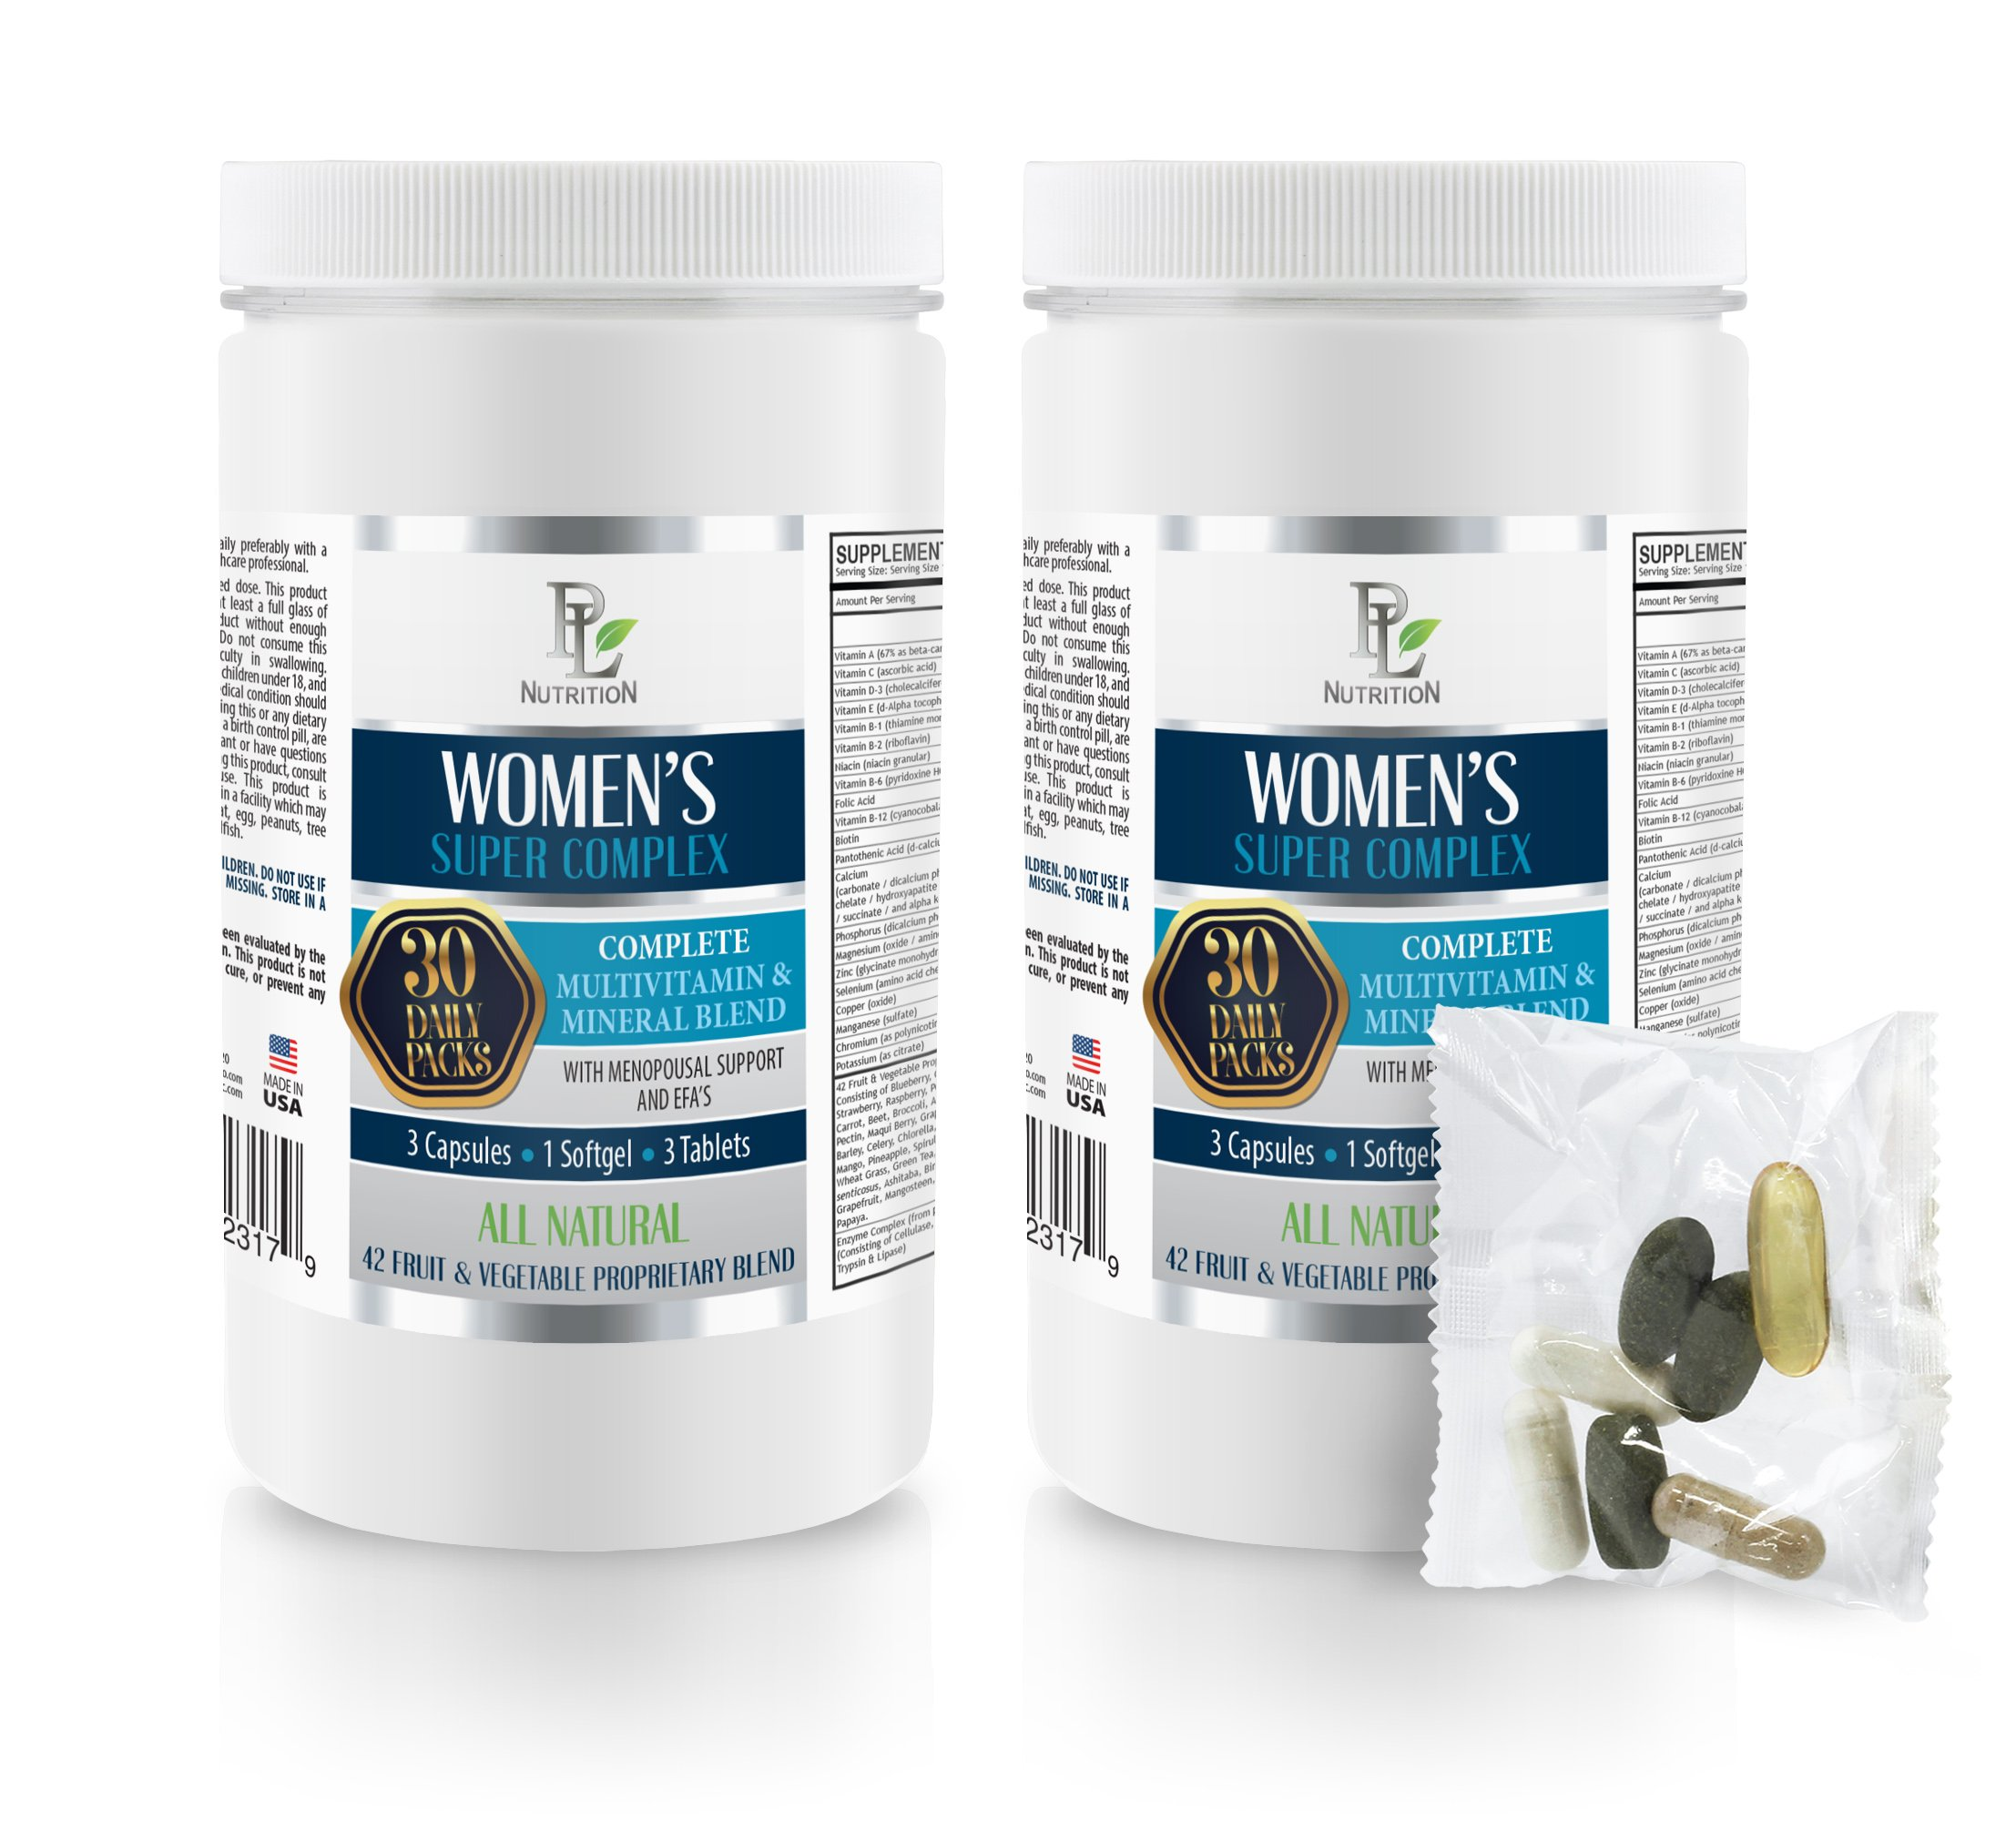 Powerful Antioxidant - Women's Super Complex - Daily Pack - folic Acid and zinc for Women - 2 Cans 60 Packs (420 Pills)